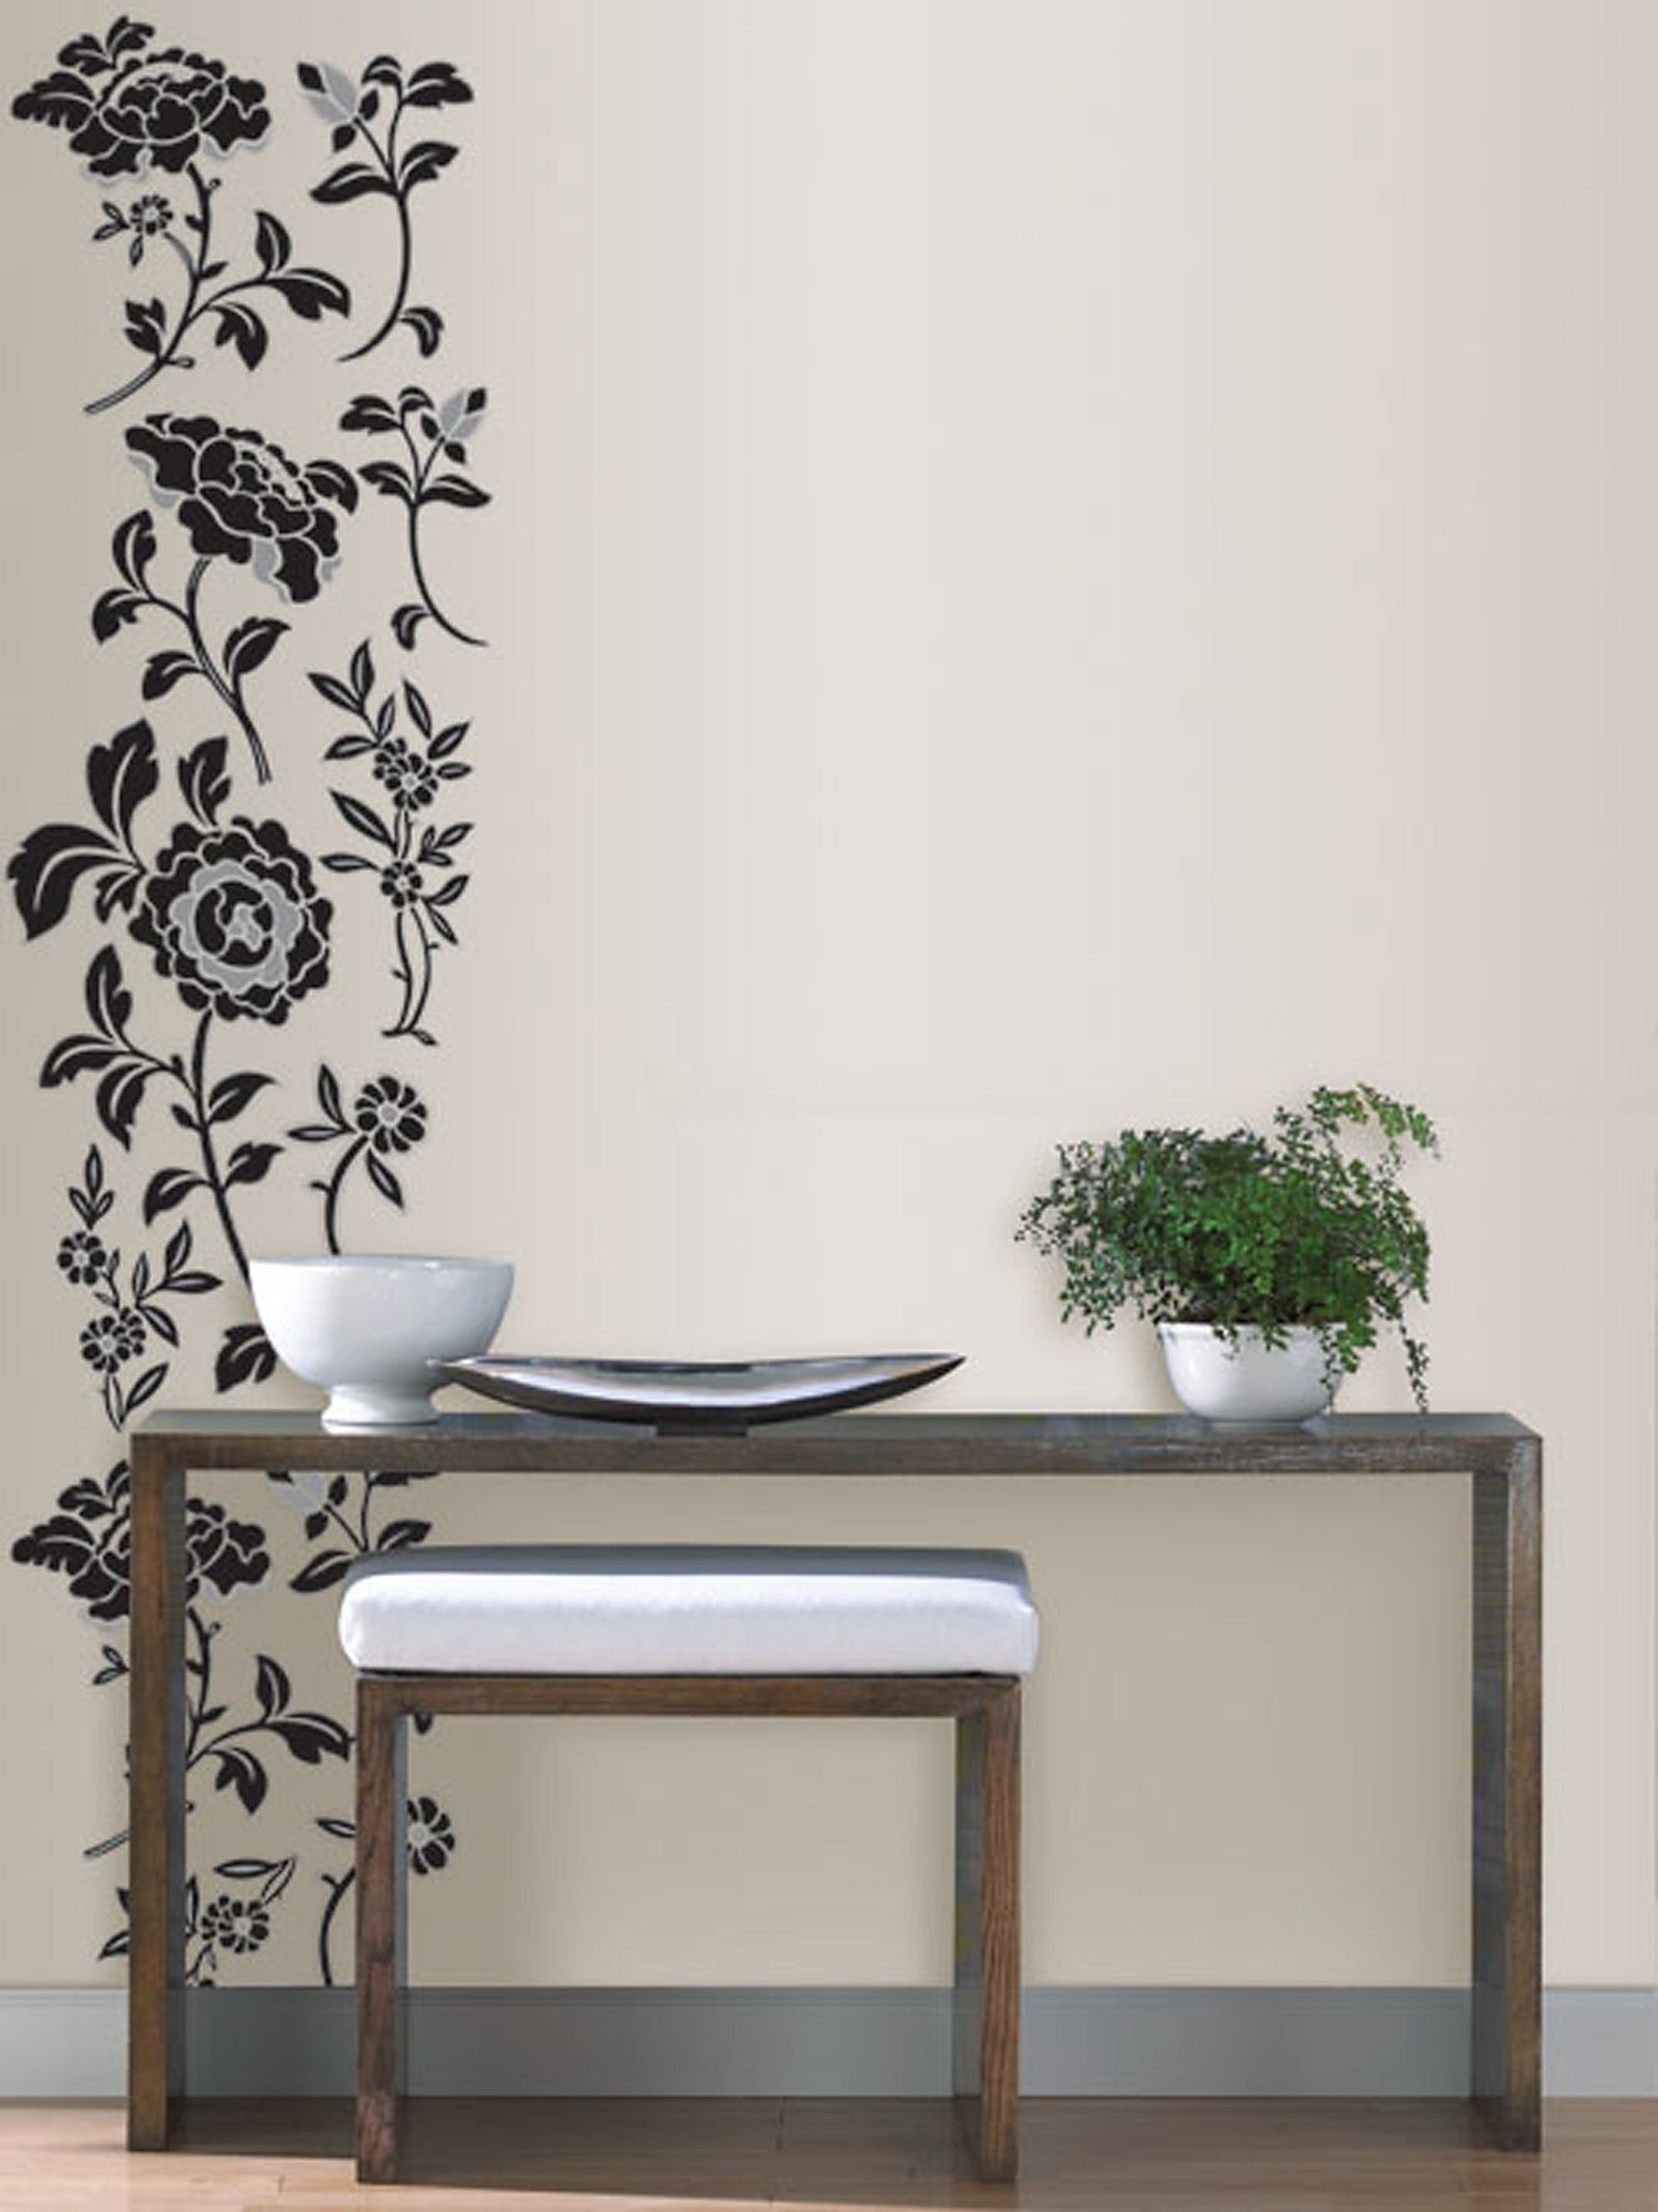 & Brocade Black Floral Wall Art Sticker Kit